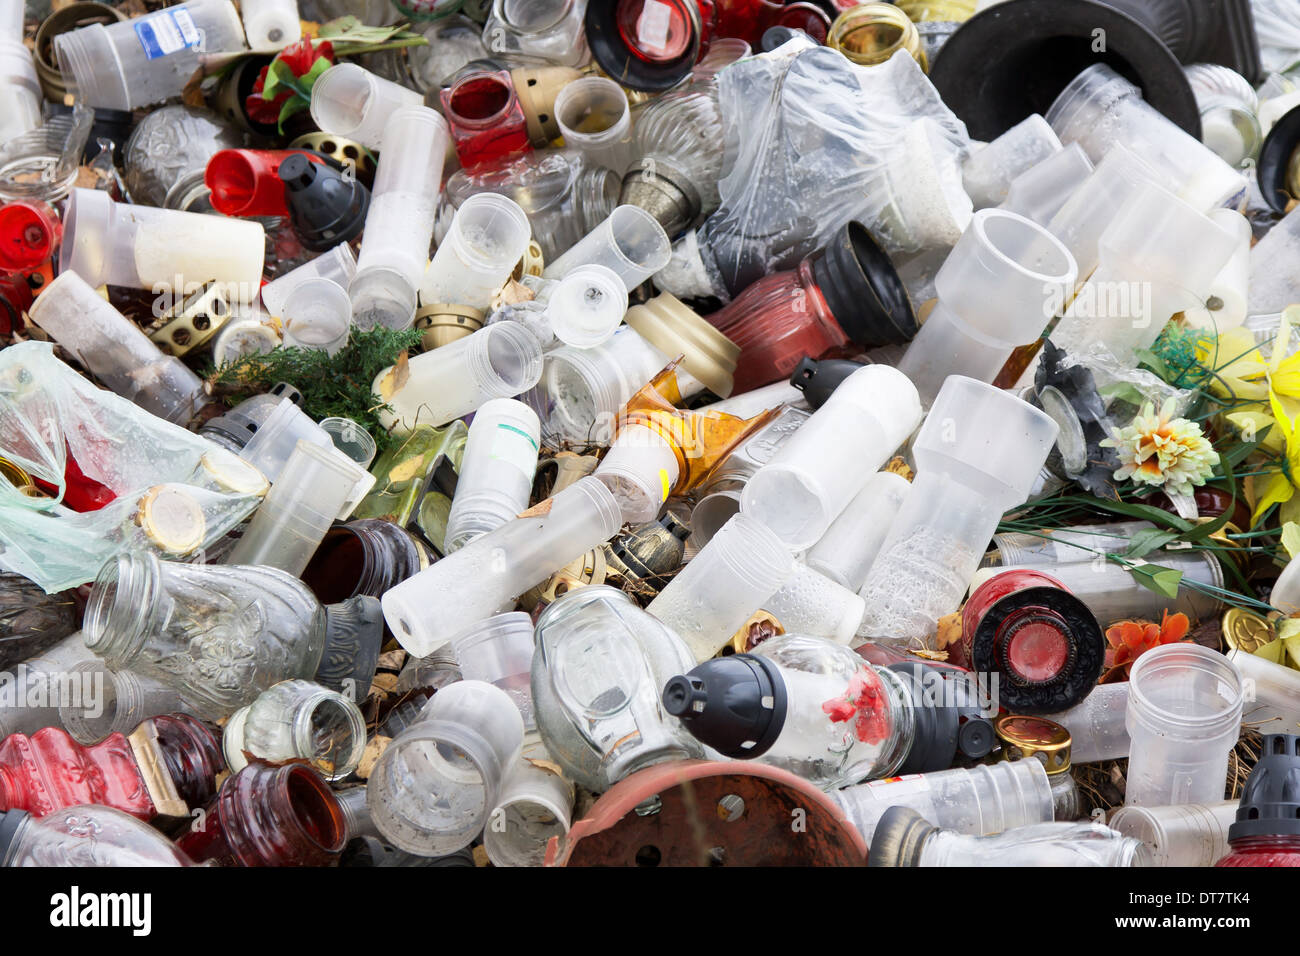 Plastic and glass rubbish on cementery - Stock Image